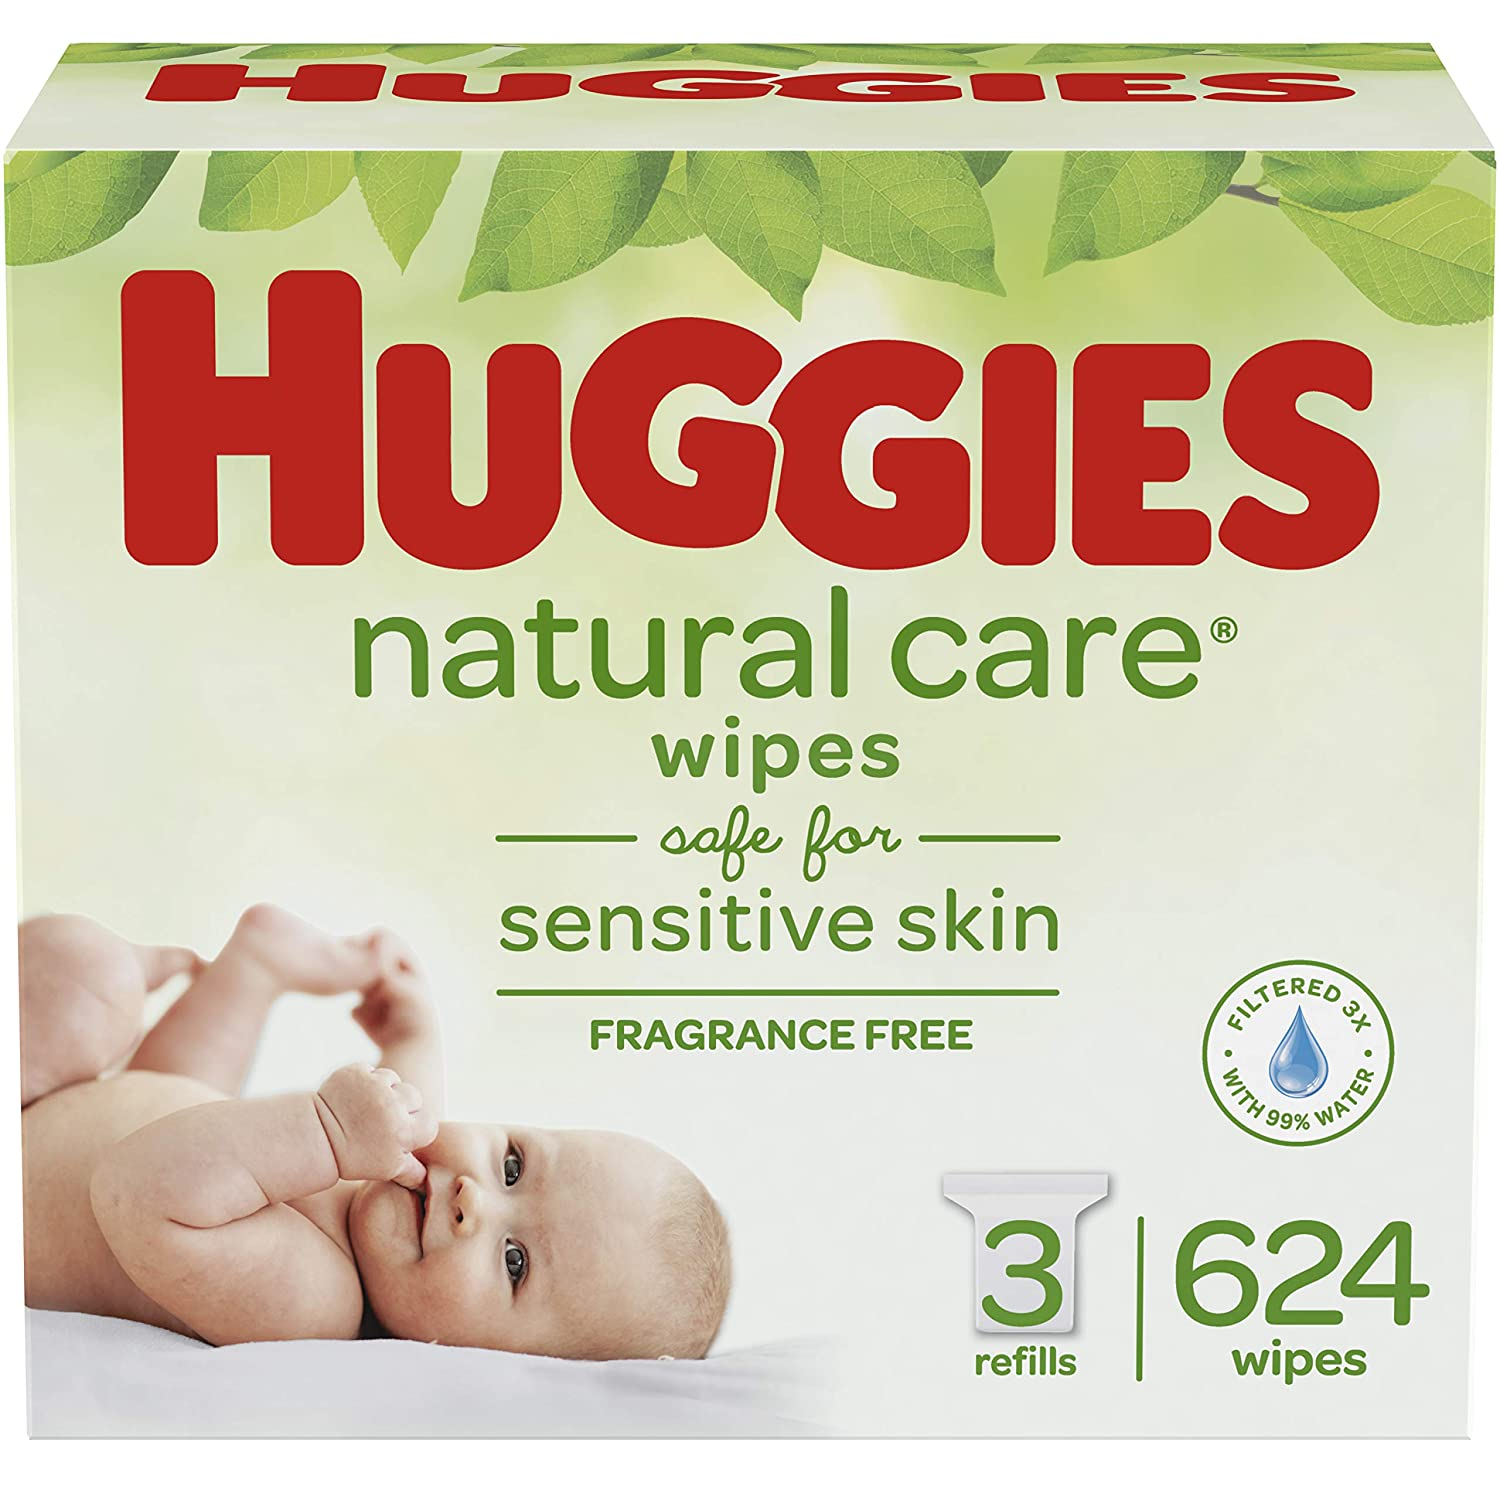 HUGGIES Natural Care Baby Wipes: The Best Natural Baby Wipes